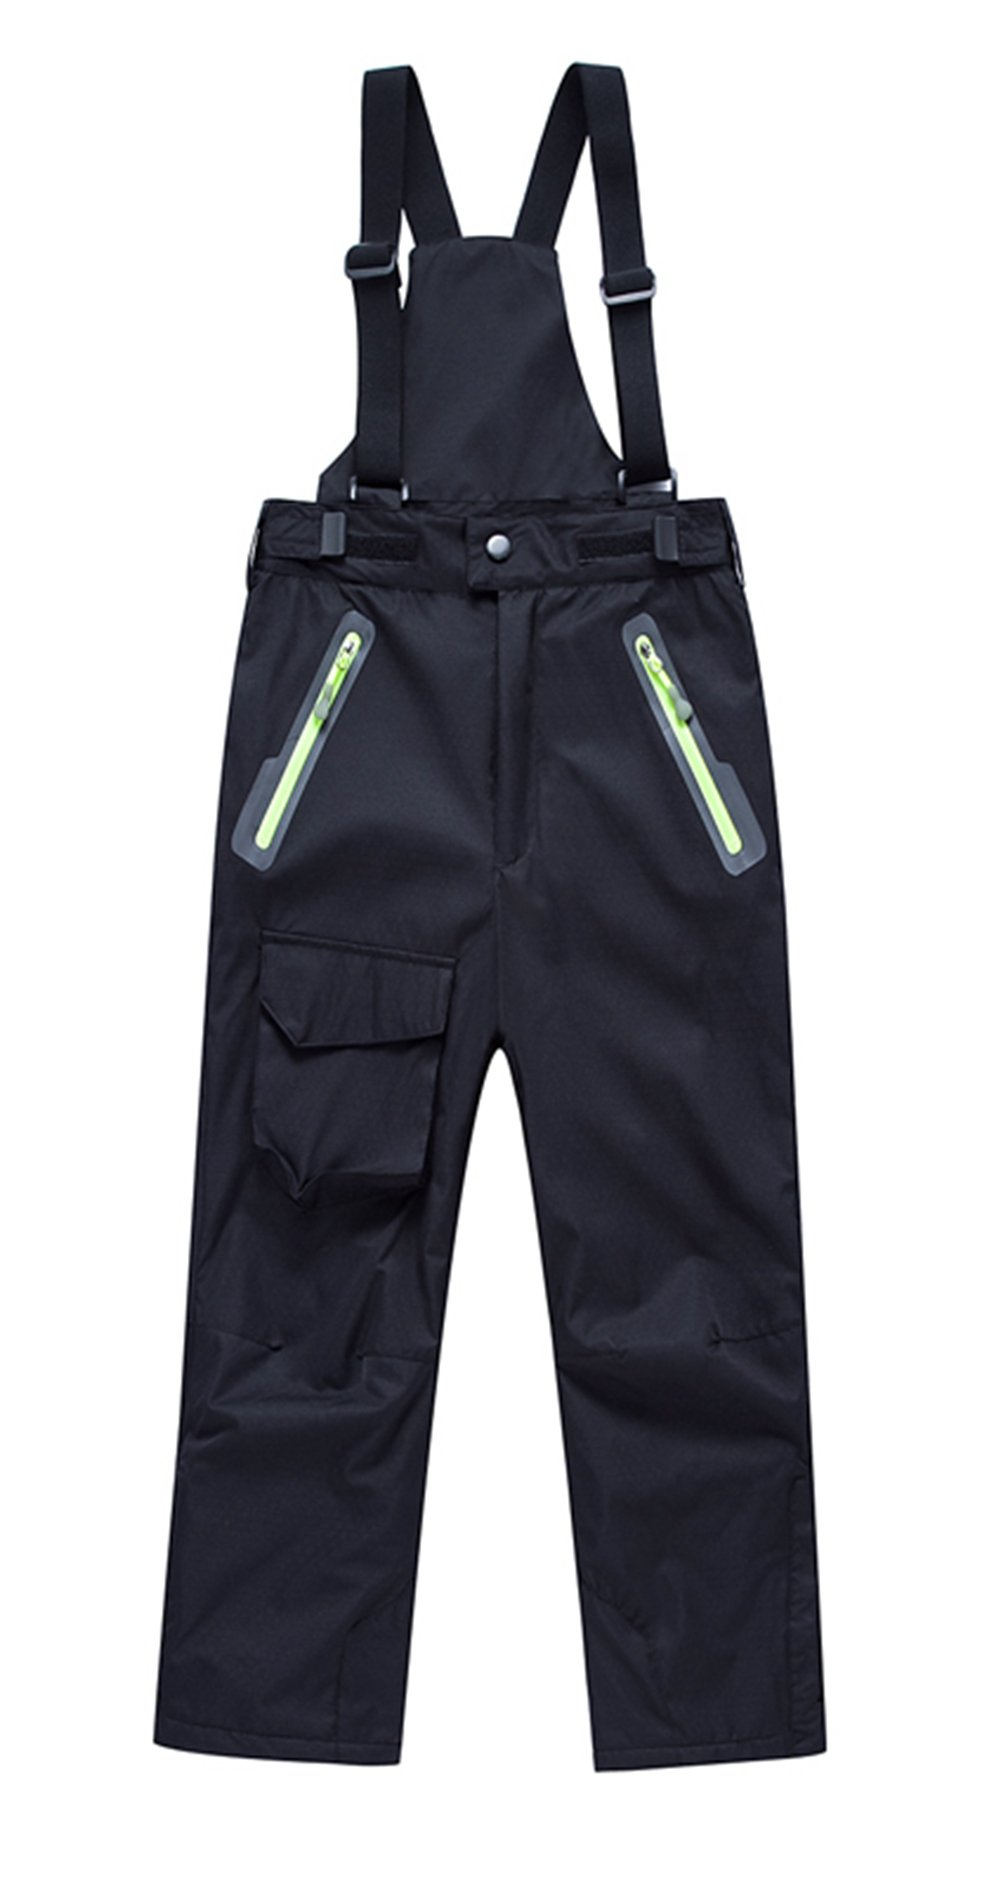 LANBAOSI Boys Girls Thick Fleece Lining Windproof Insulated Bib Overalls Snow Pants